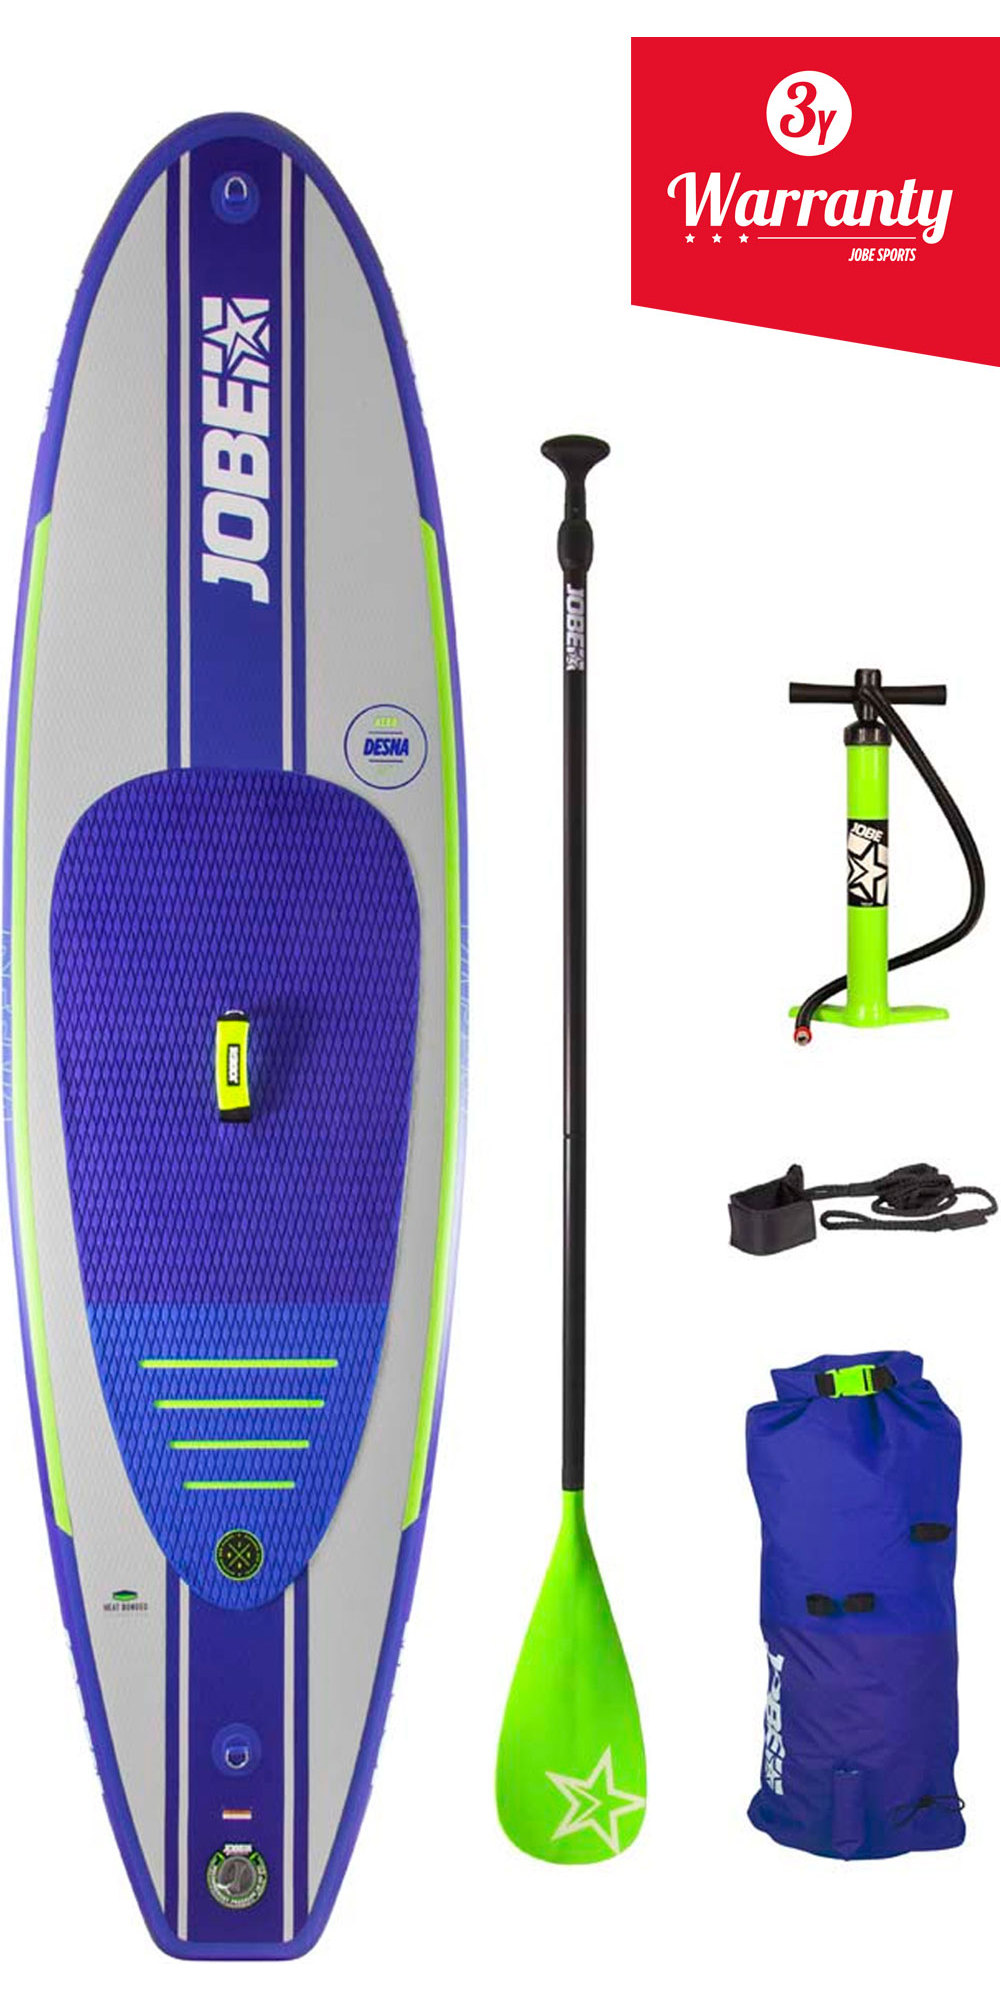 004db48f6282 2019 Jobe Desna Inflatable Stand Up Paddle Board 100 X 32 Inc Paddle ...